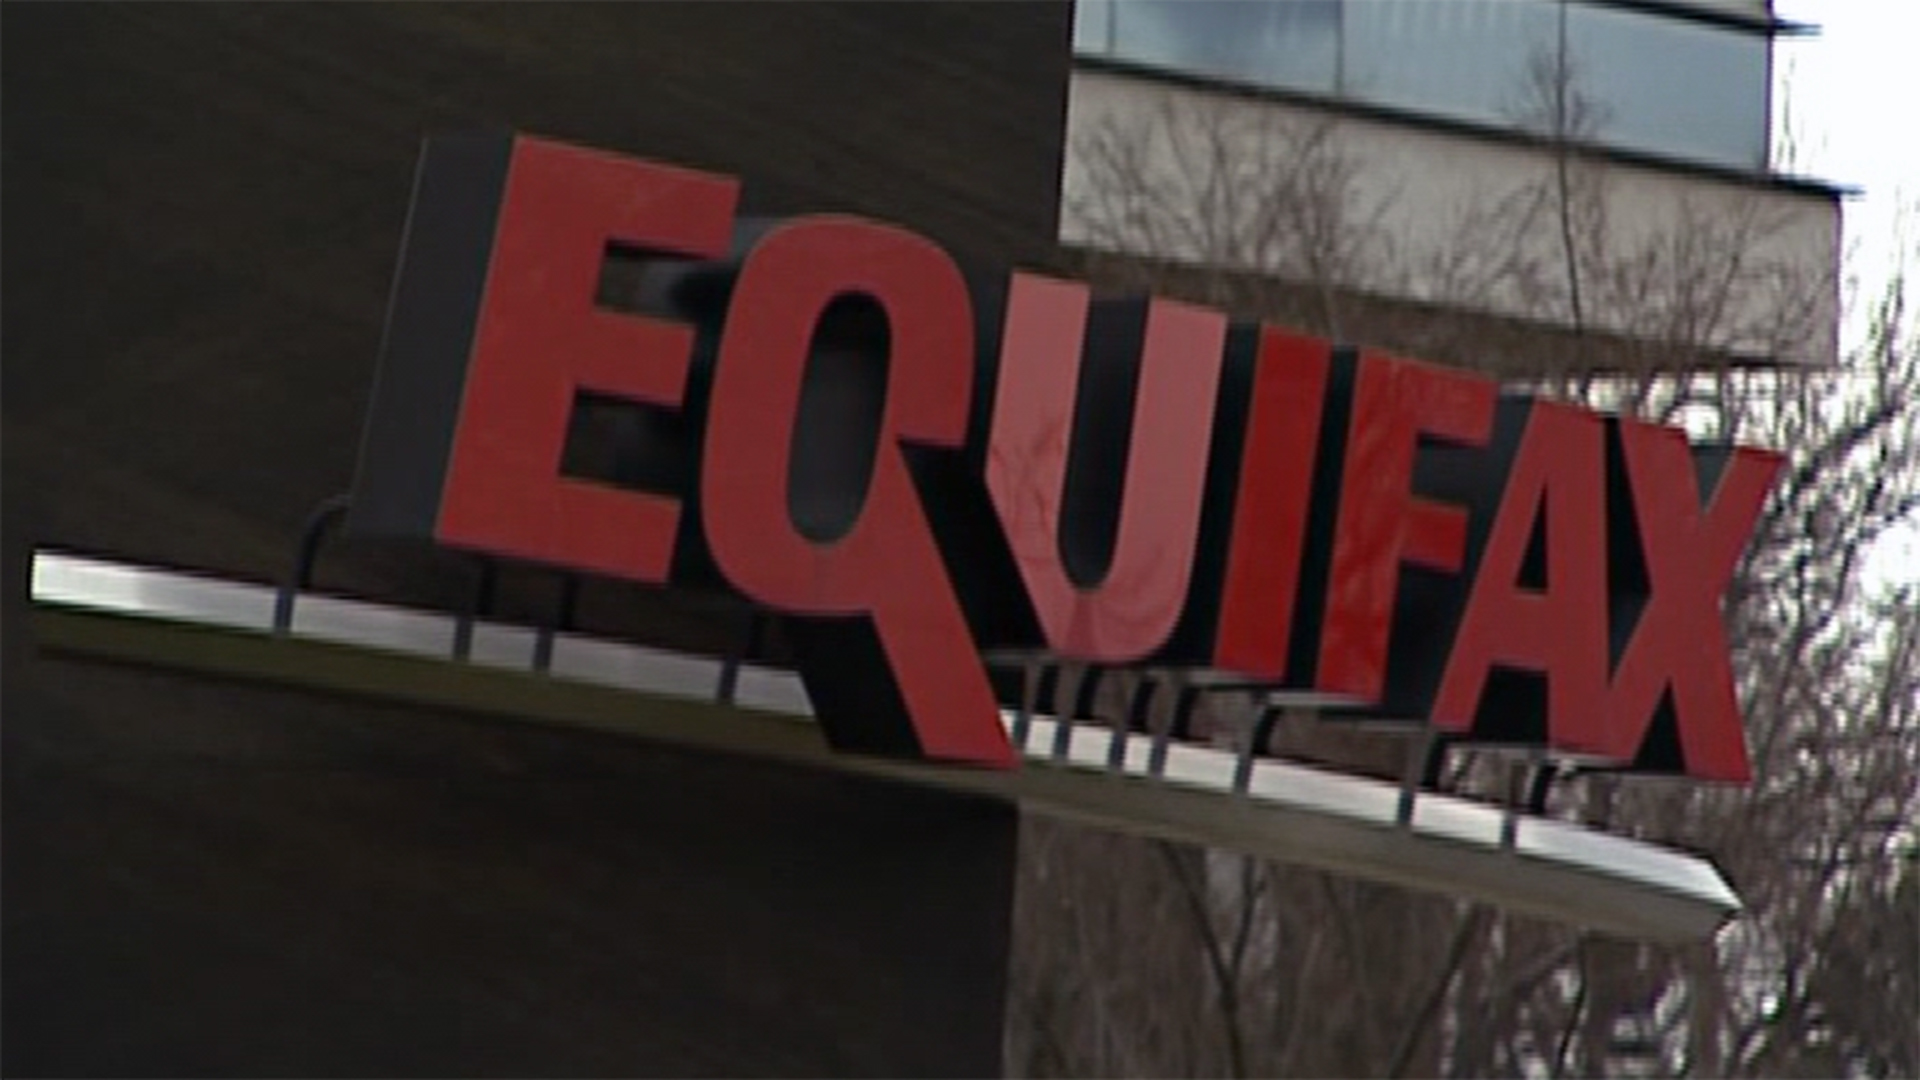 Equifax sign from CNN video-159532.jpg62202436